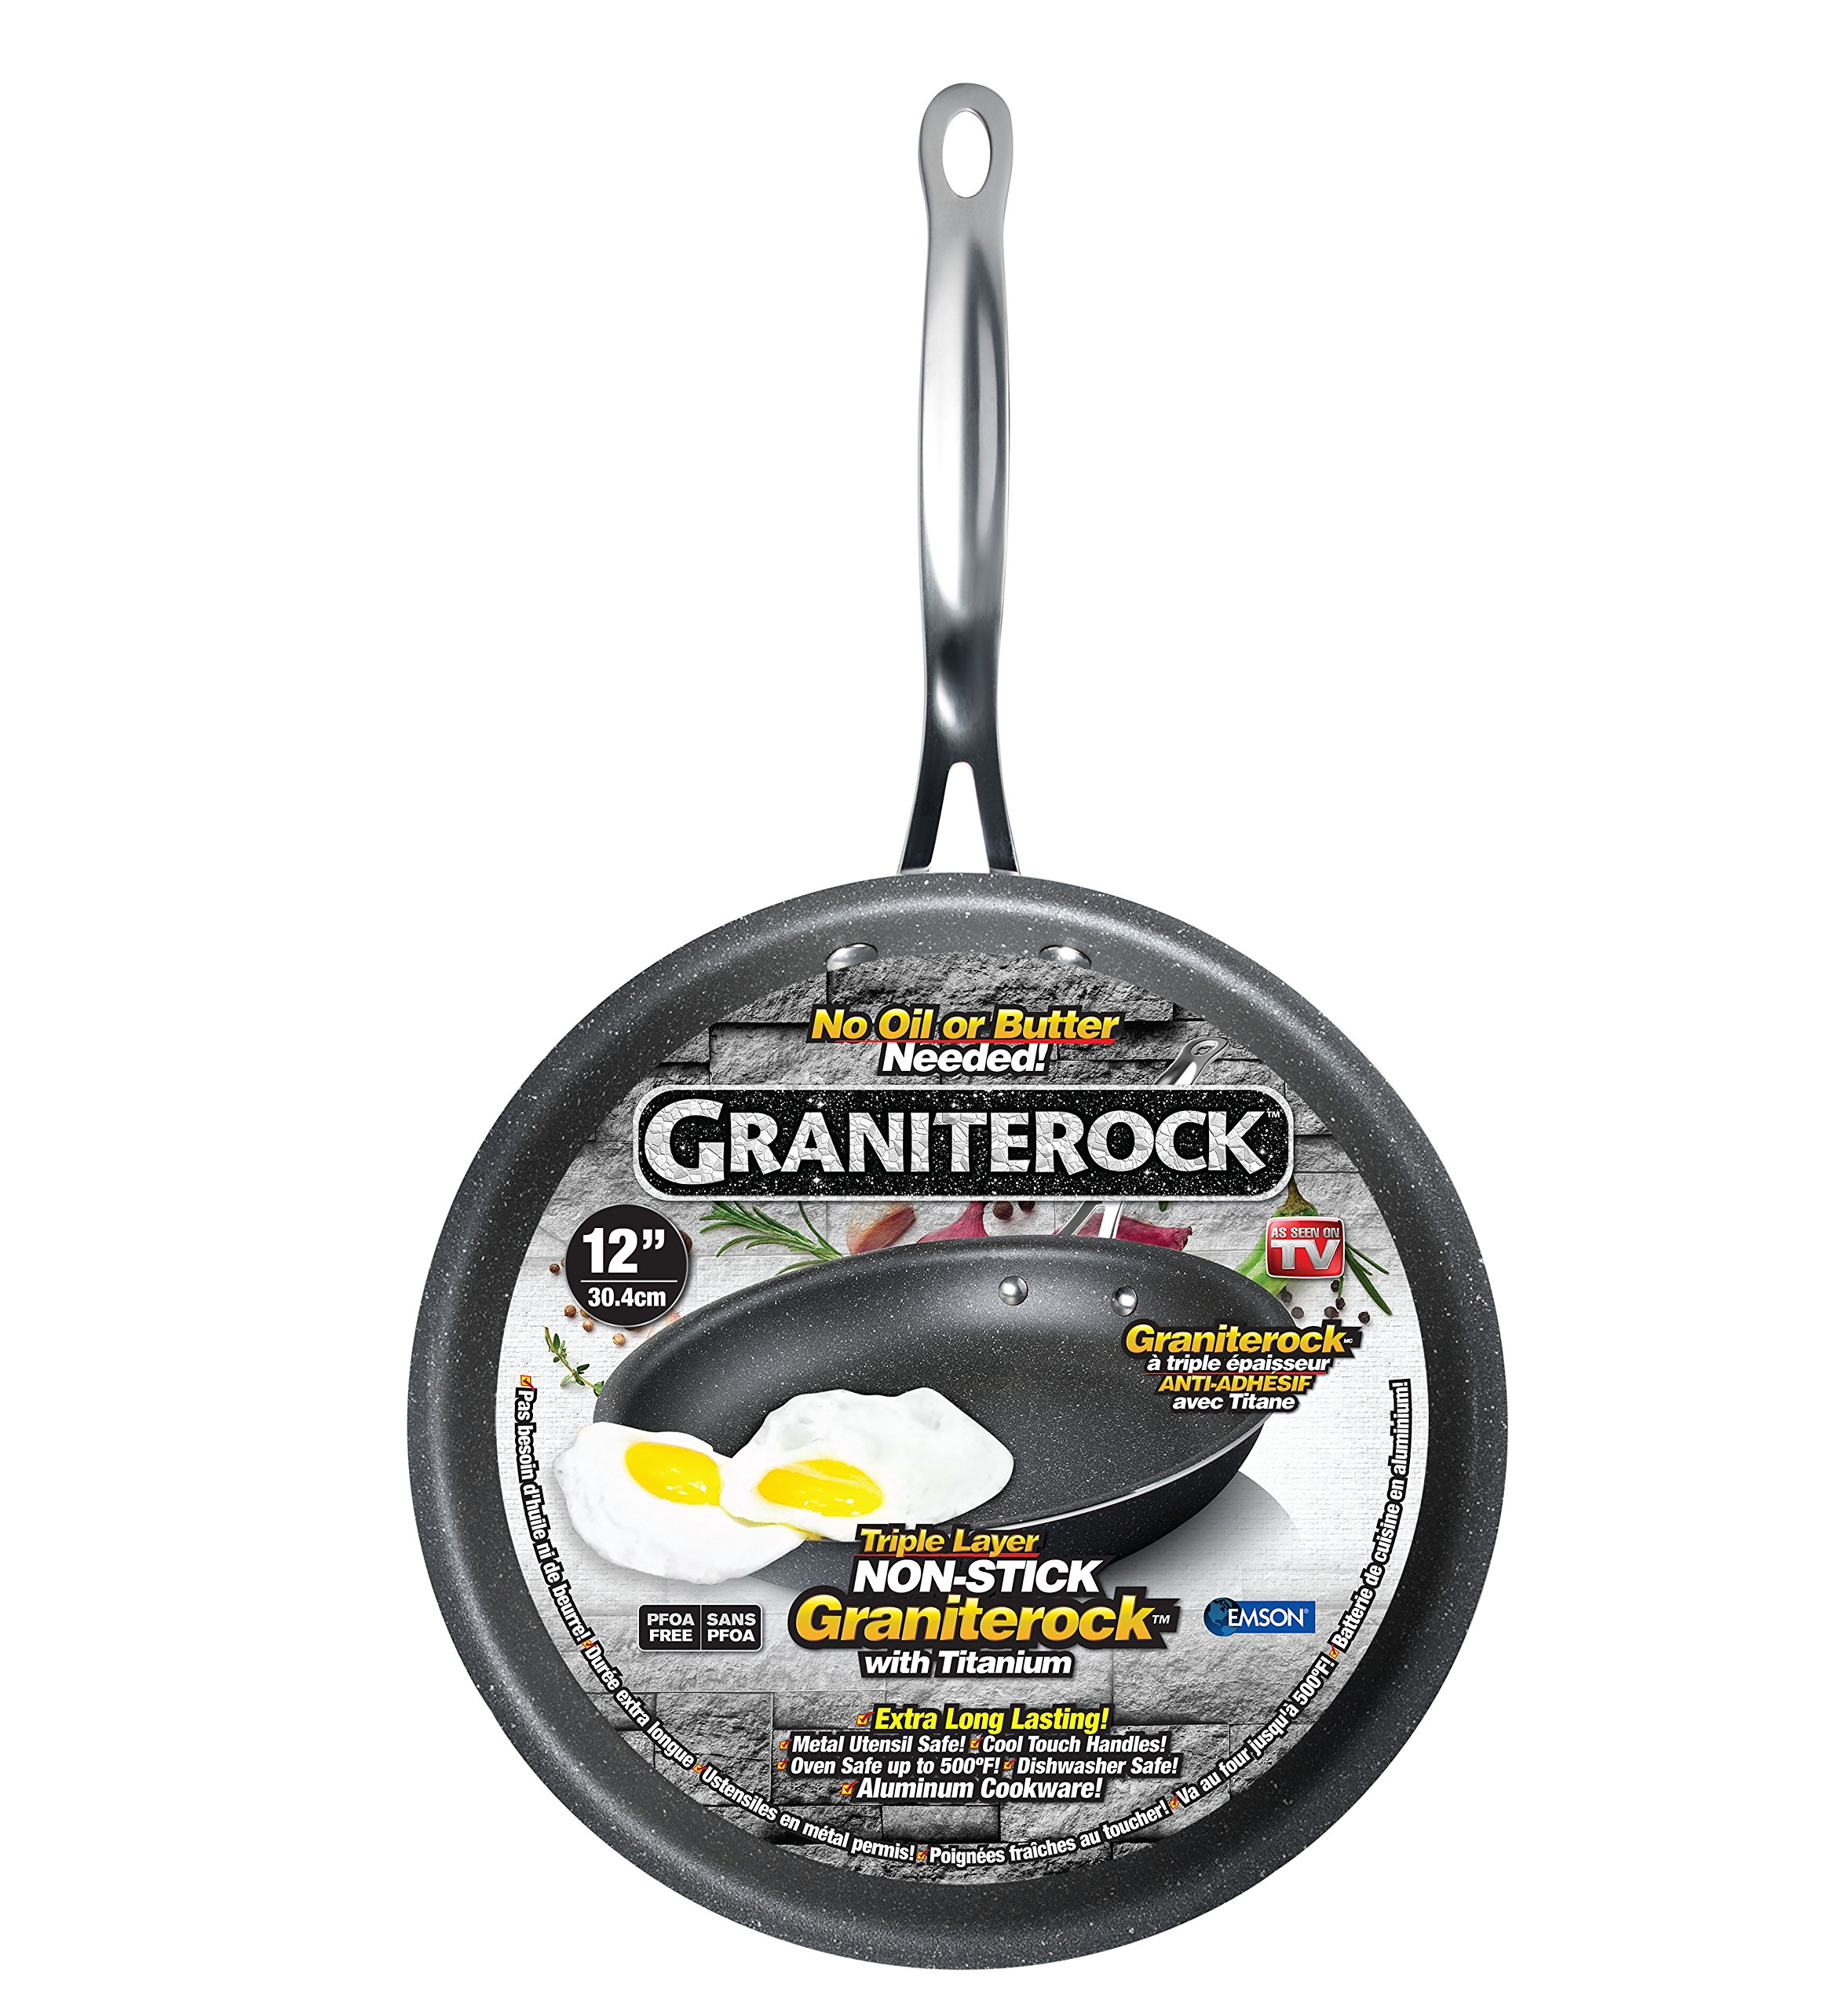 Graniterock Non-stick, No-warp, Mineral-enforced Frying Pans PFOA-Free As Seen On TV (12-inch)